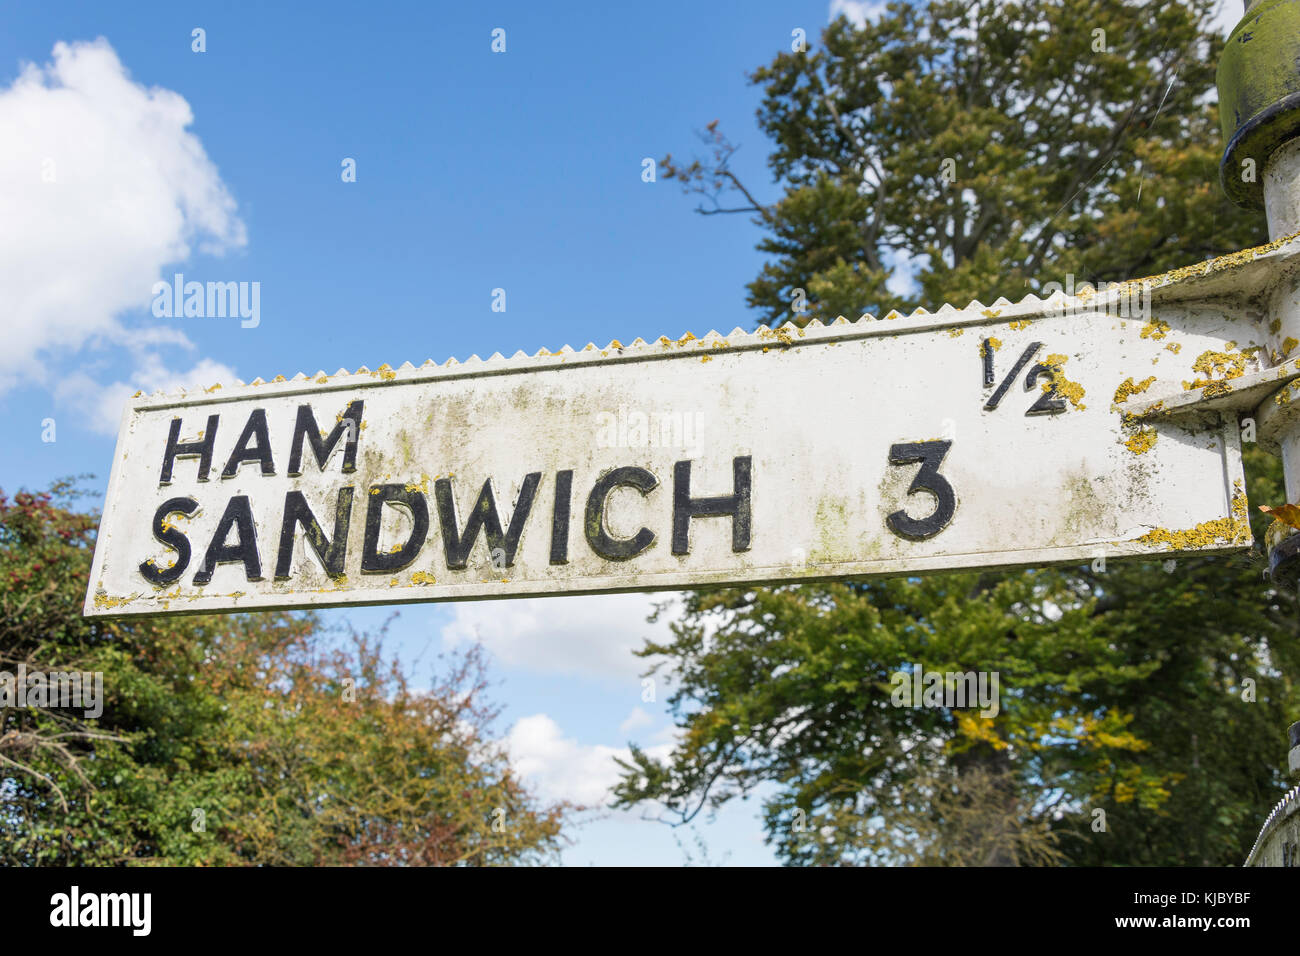 Ham Sandwich road sign, Northbourne Lane, Northbourne, Kent, England, United Kingdom - Stock Image